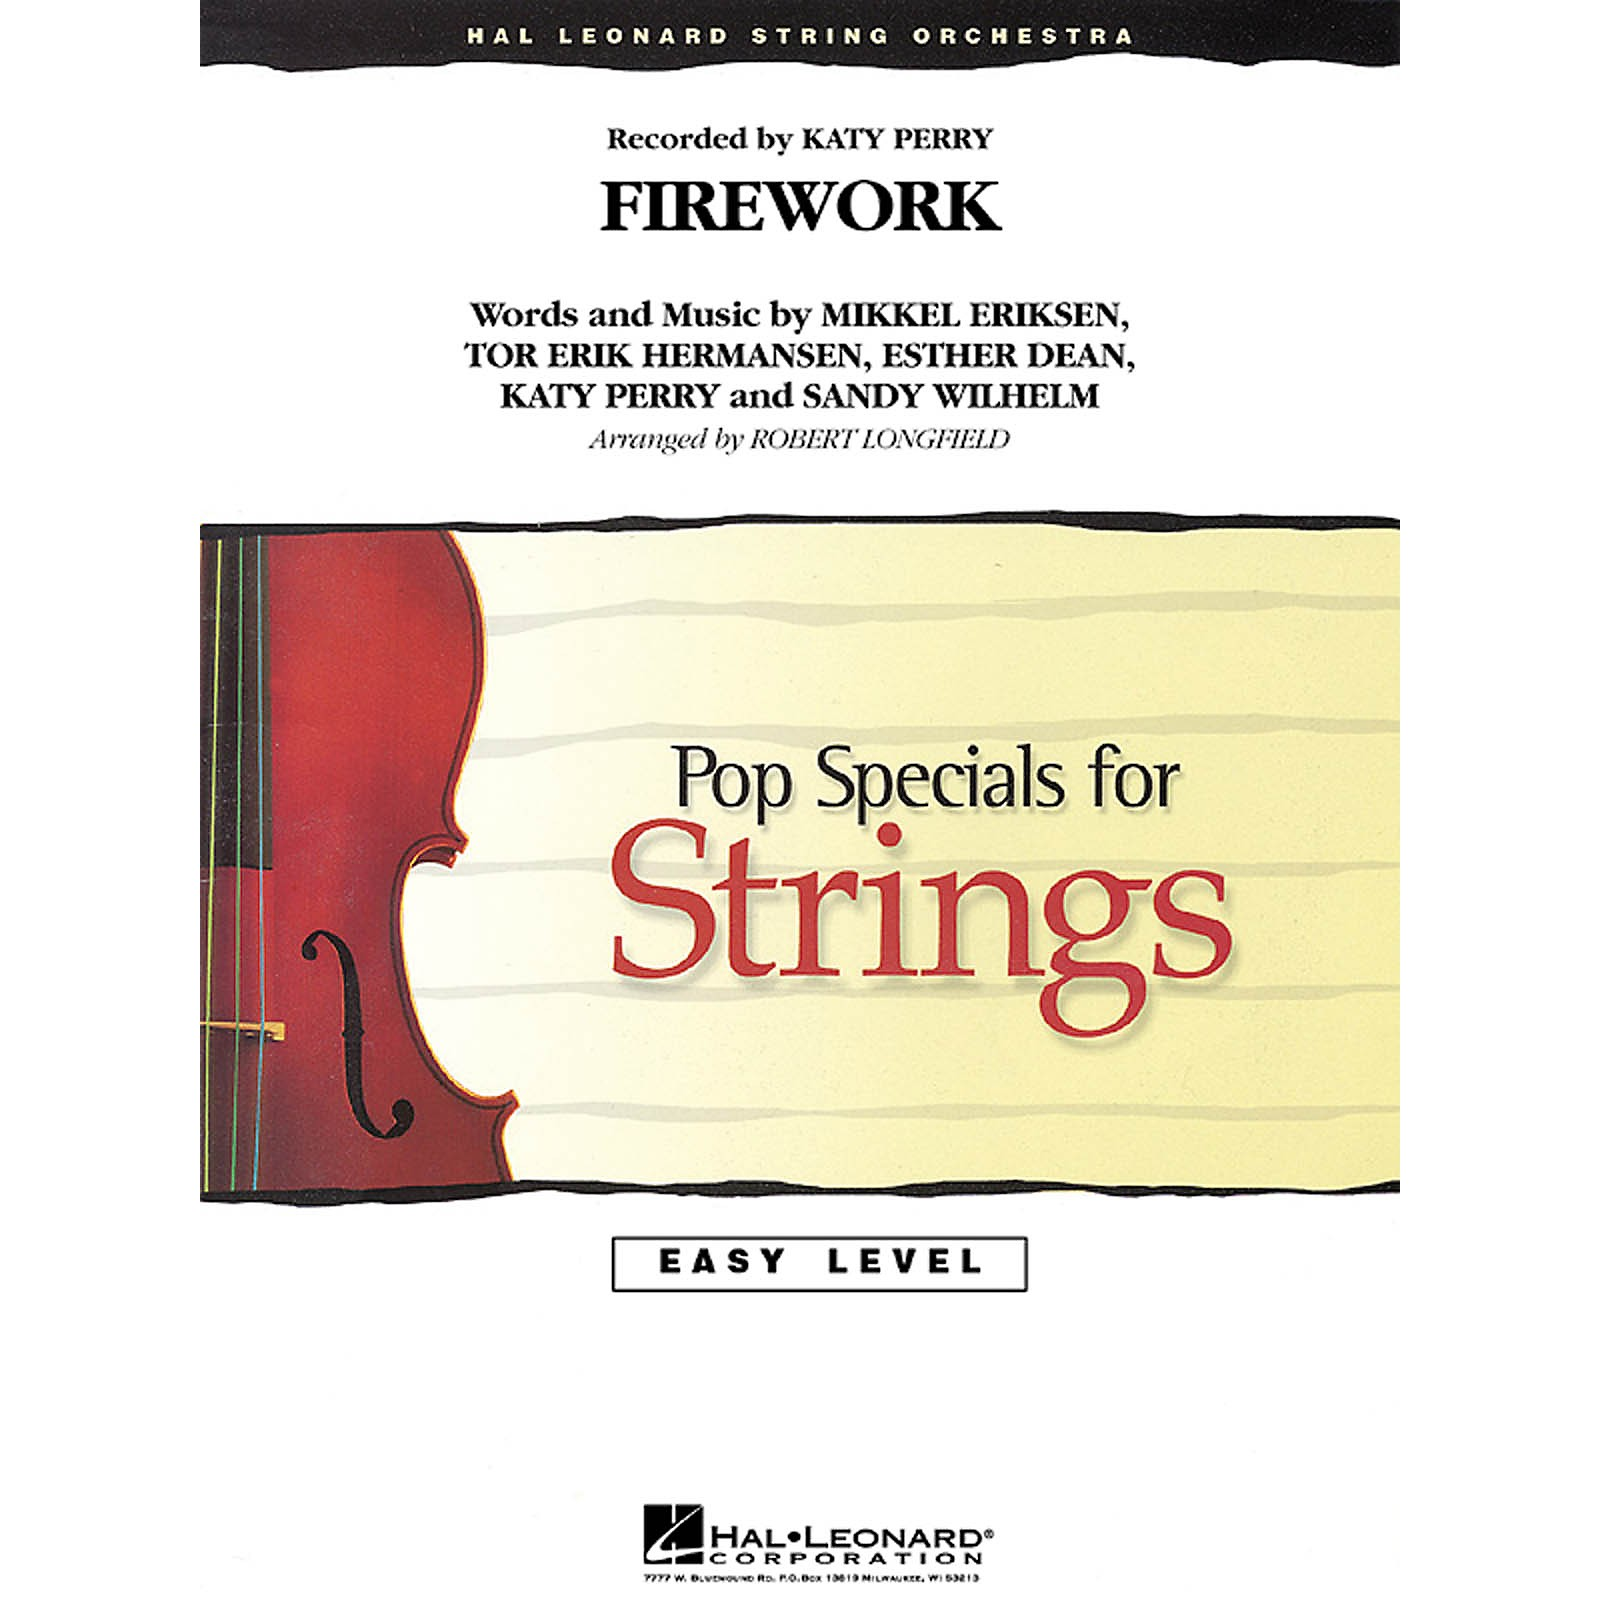 Hal Leonard Firework Easy Pop Specials For Strings Series by Katy Perry Arranged by Robert Longfield